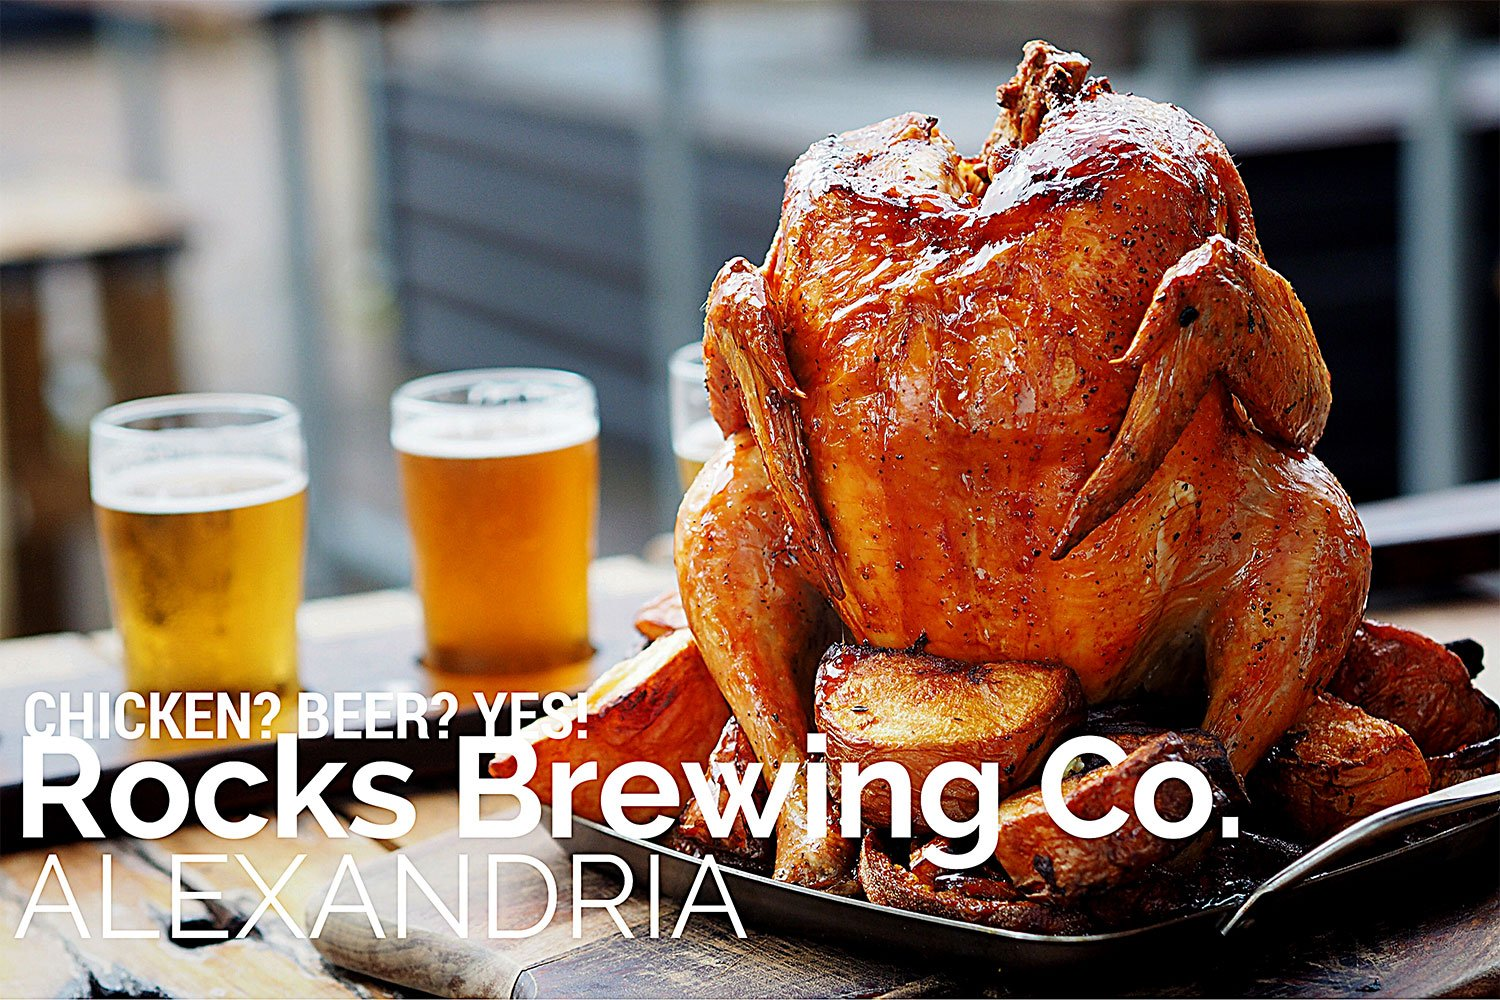 Drunken Chicken - Sydney Food Blog Review of Rocks Brewing Co. Alexandria